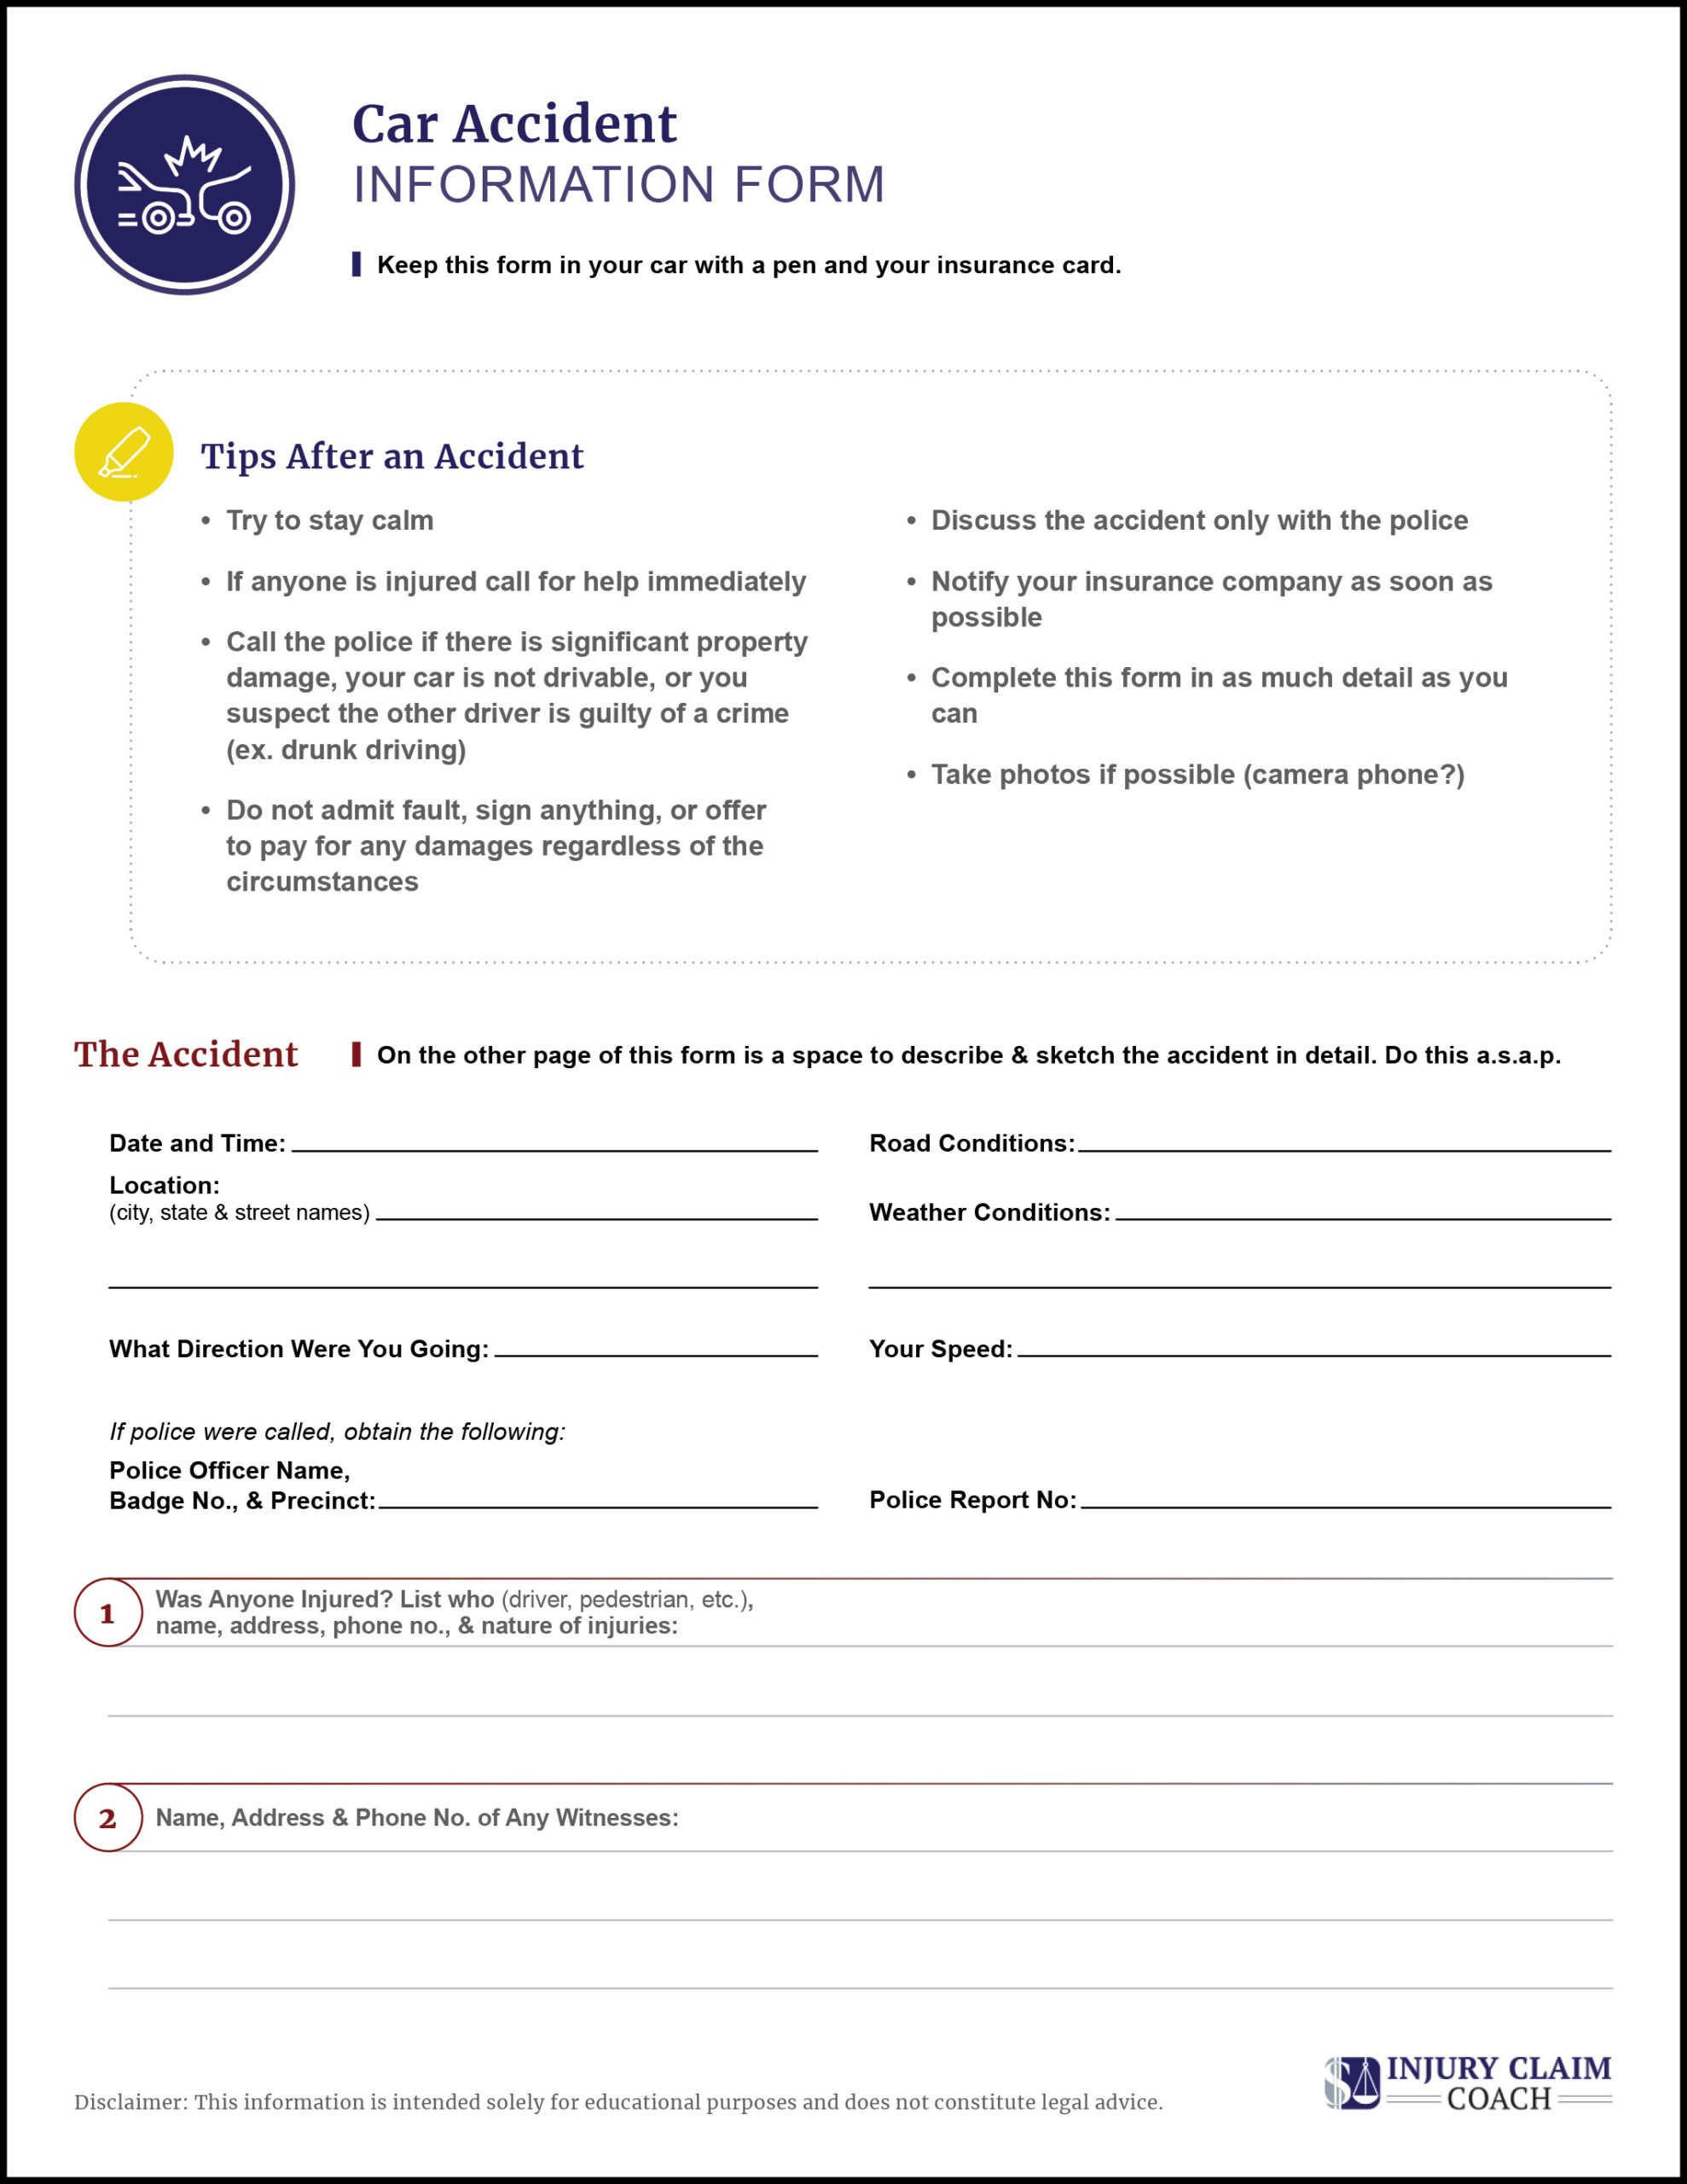 Car Accident Information Form p1